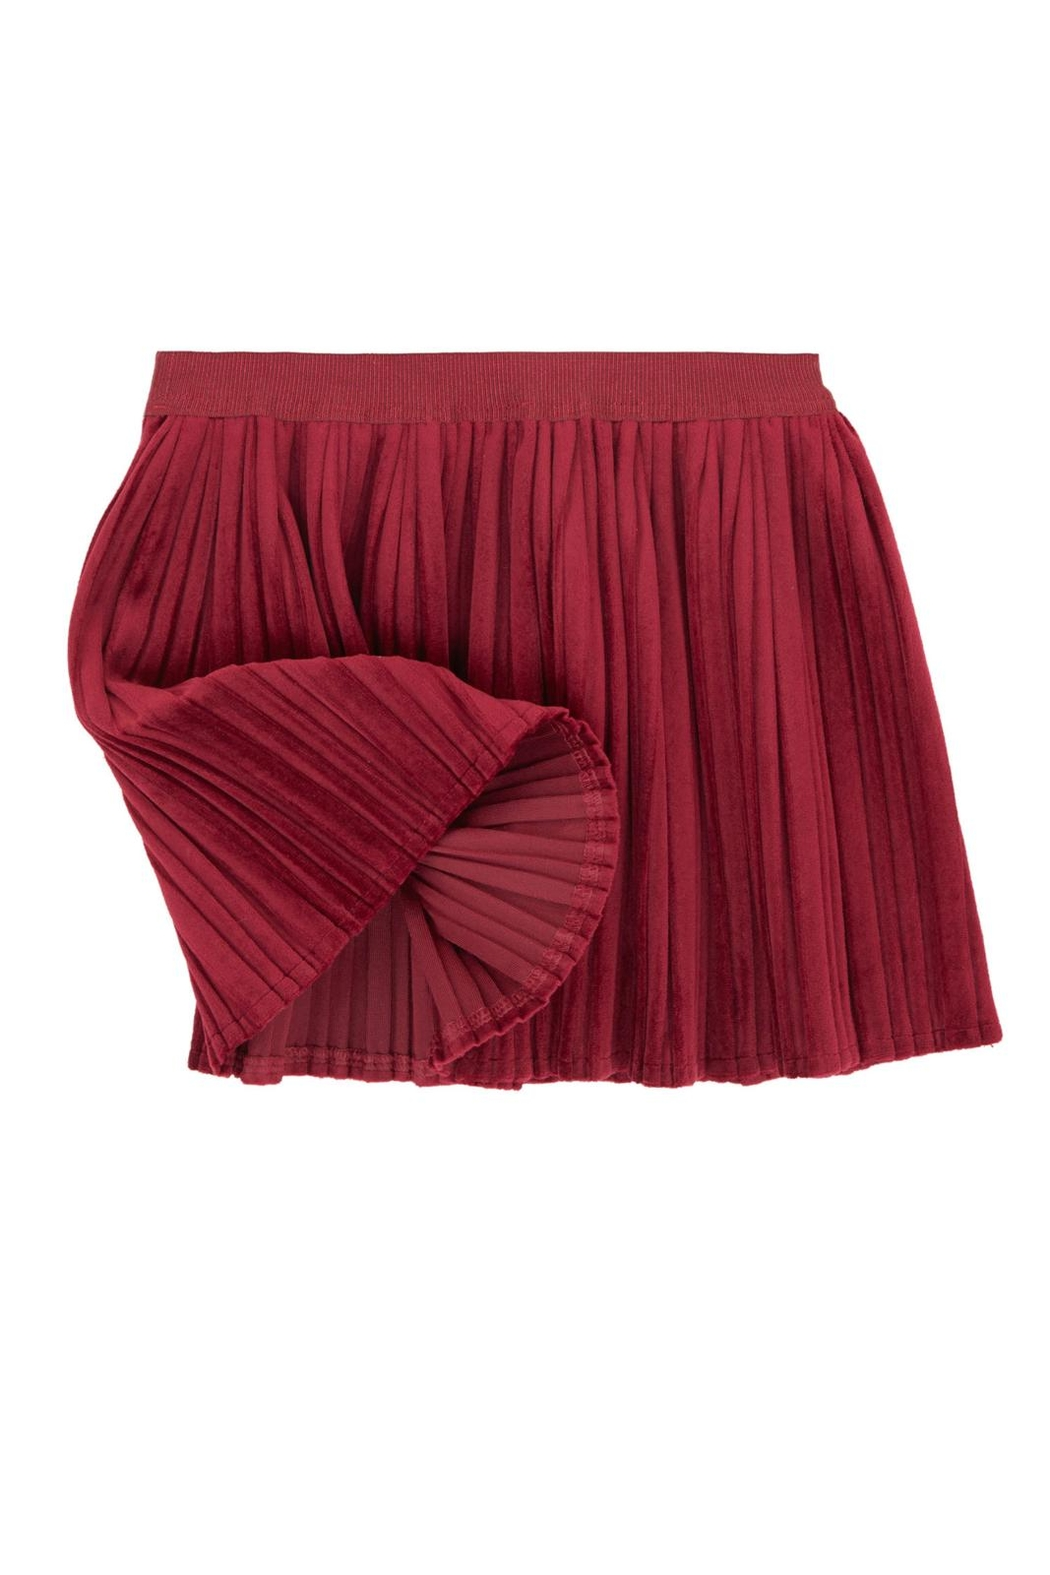 Mayoral Red Velvet Skirt - Front Full Image